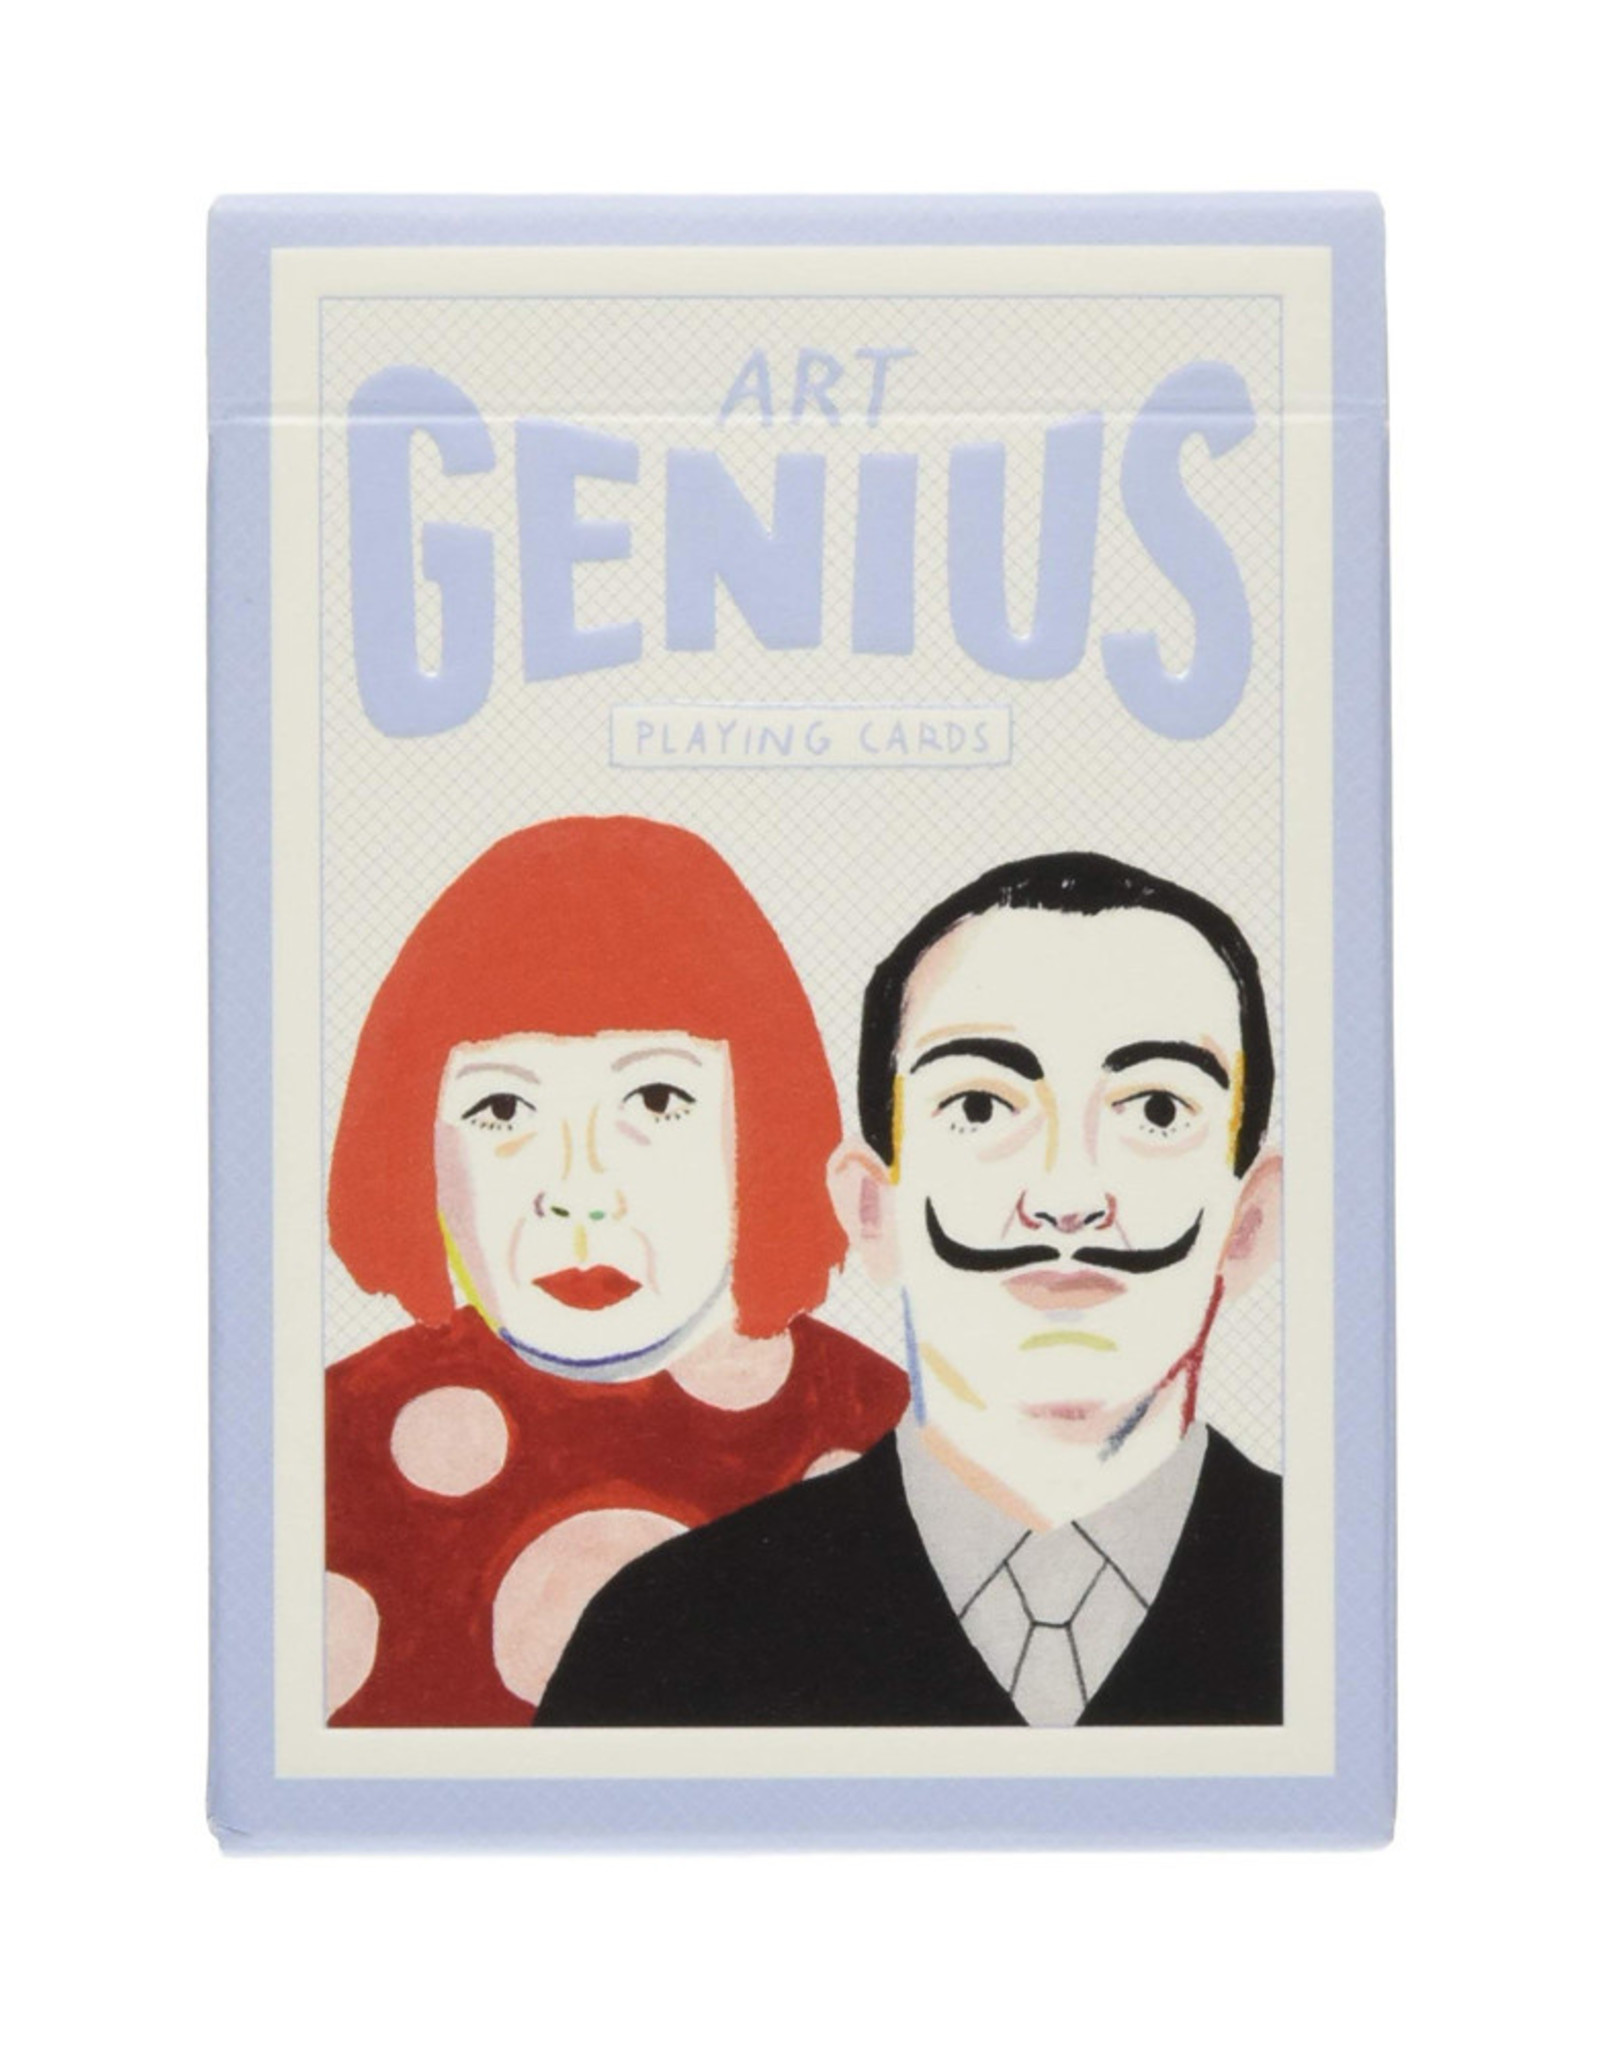 Art Genius Playing Cards illustrated by Rebecca Clarke